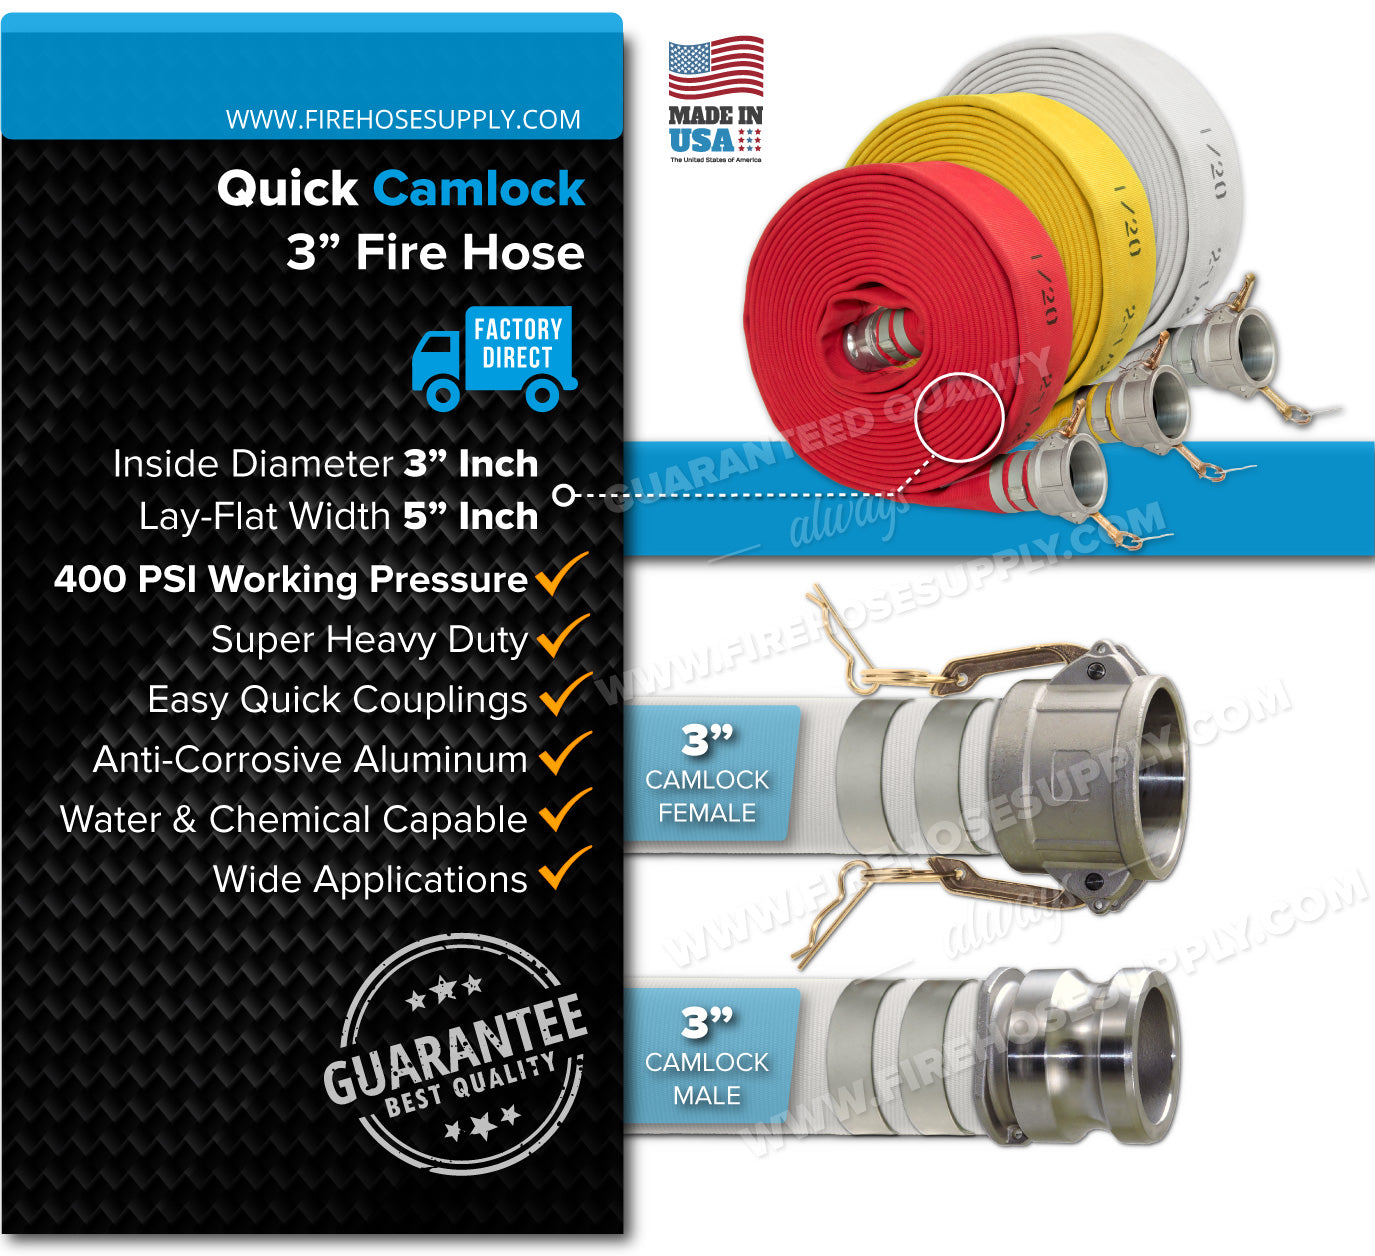 3 Inch Double Jacket Camlock Fire Hose Overview